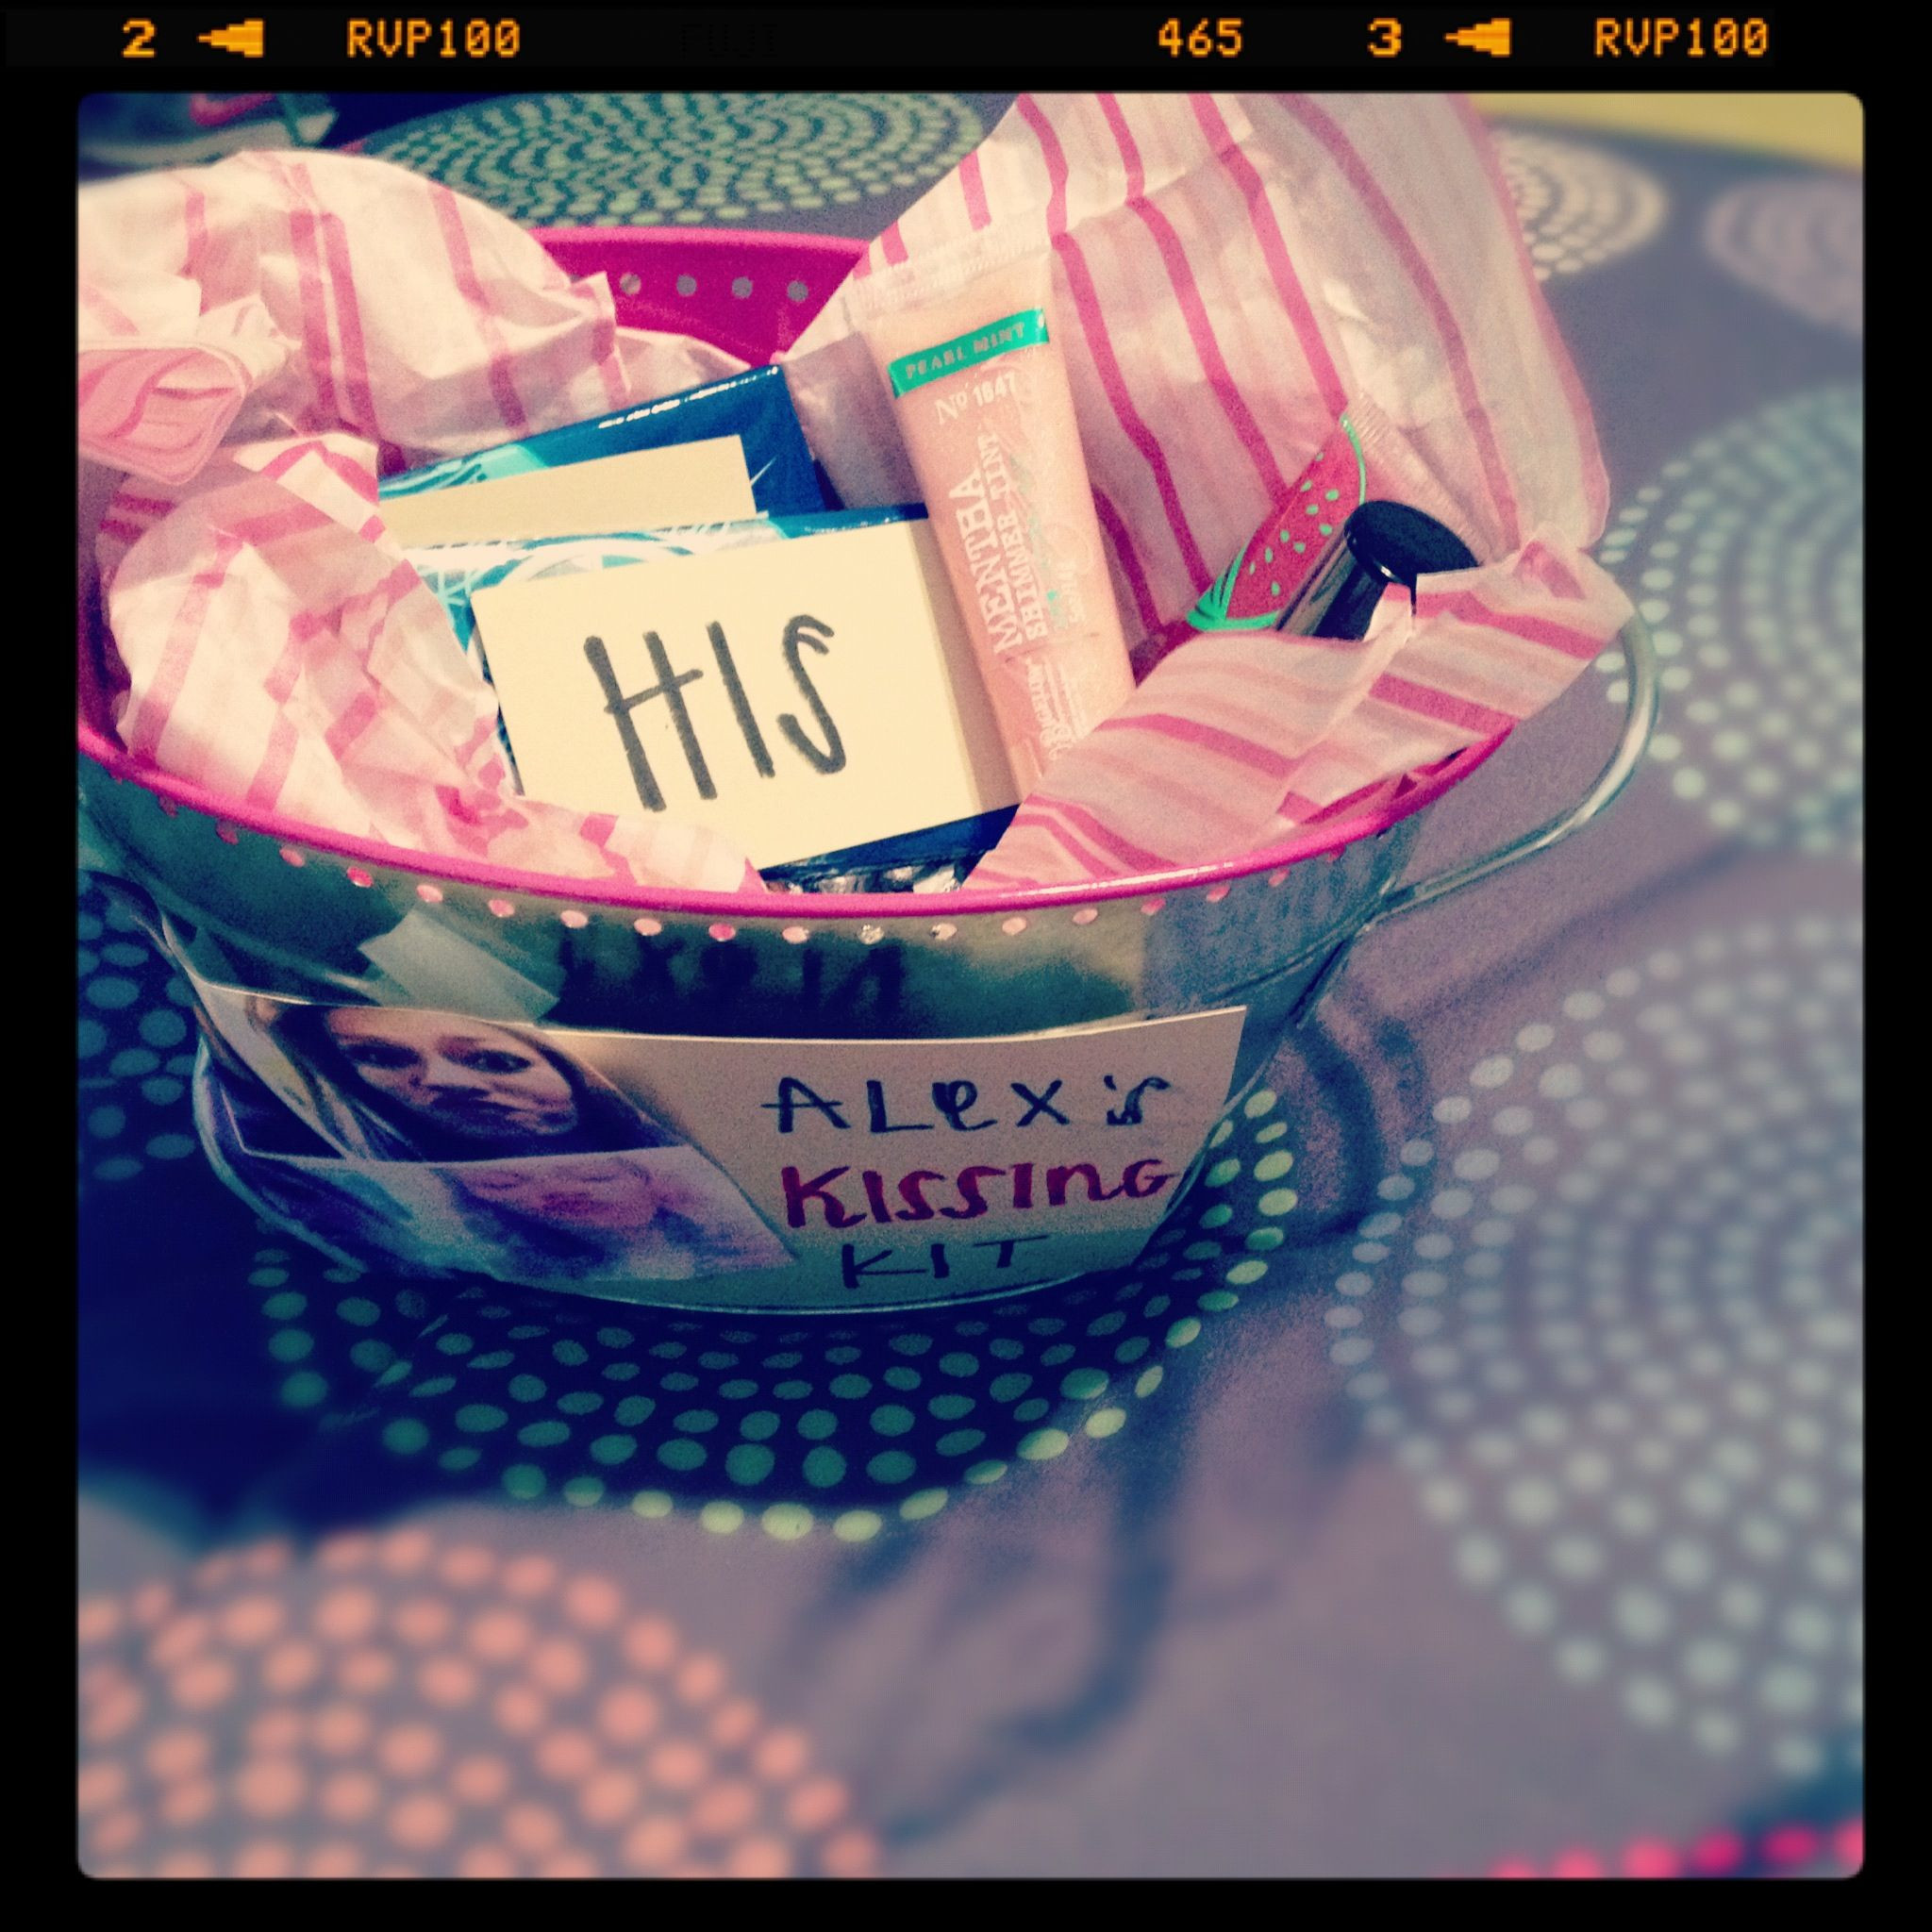 Best ideas about Sweet 16 Gift Ideas For Friend . Save or Pin Sweet 16 kissing kit made by my cute best friend Now.